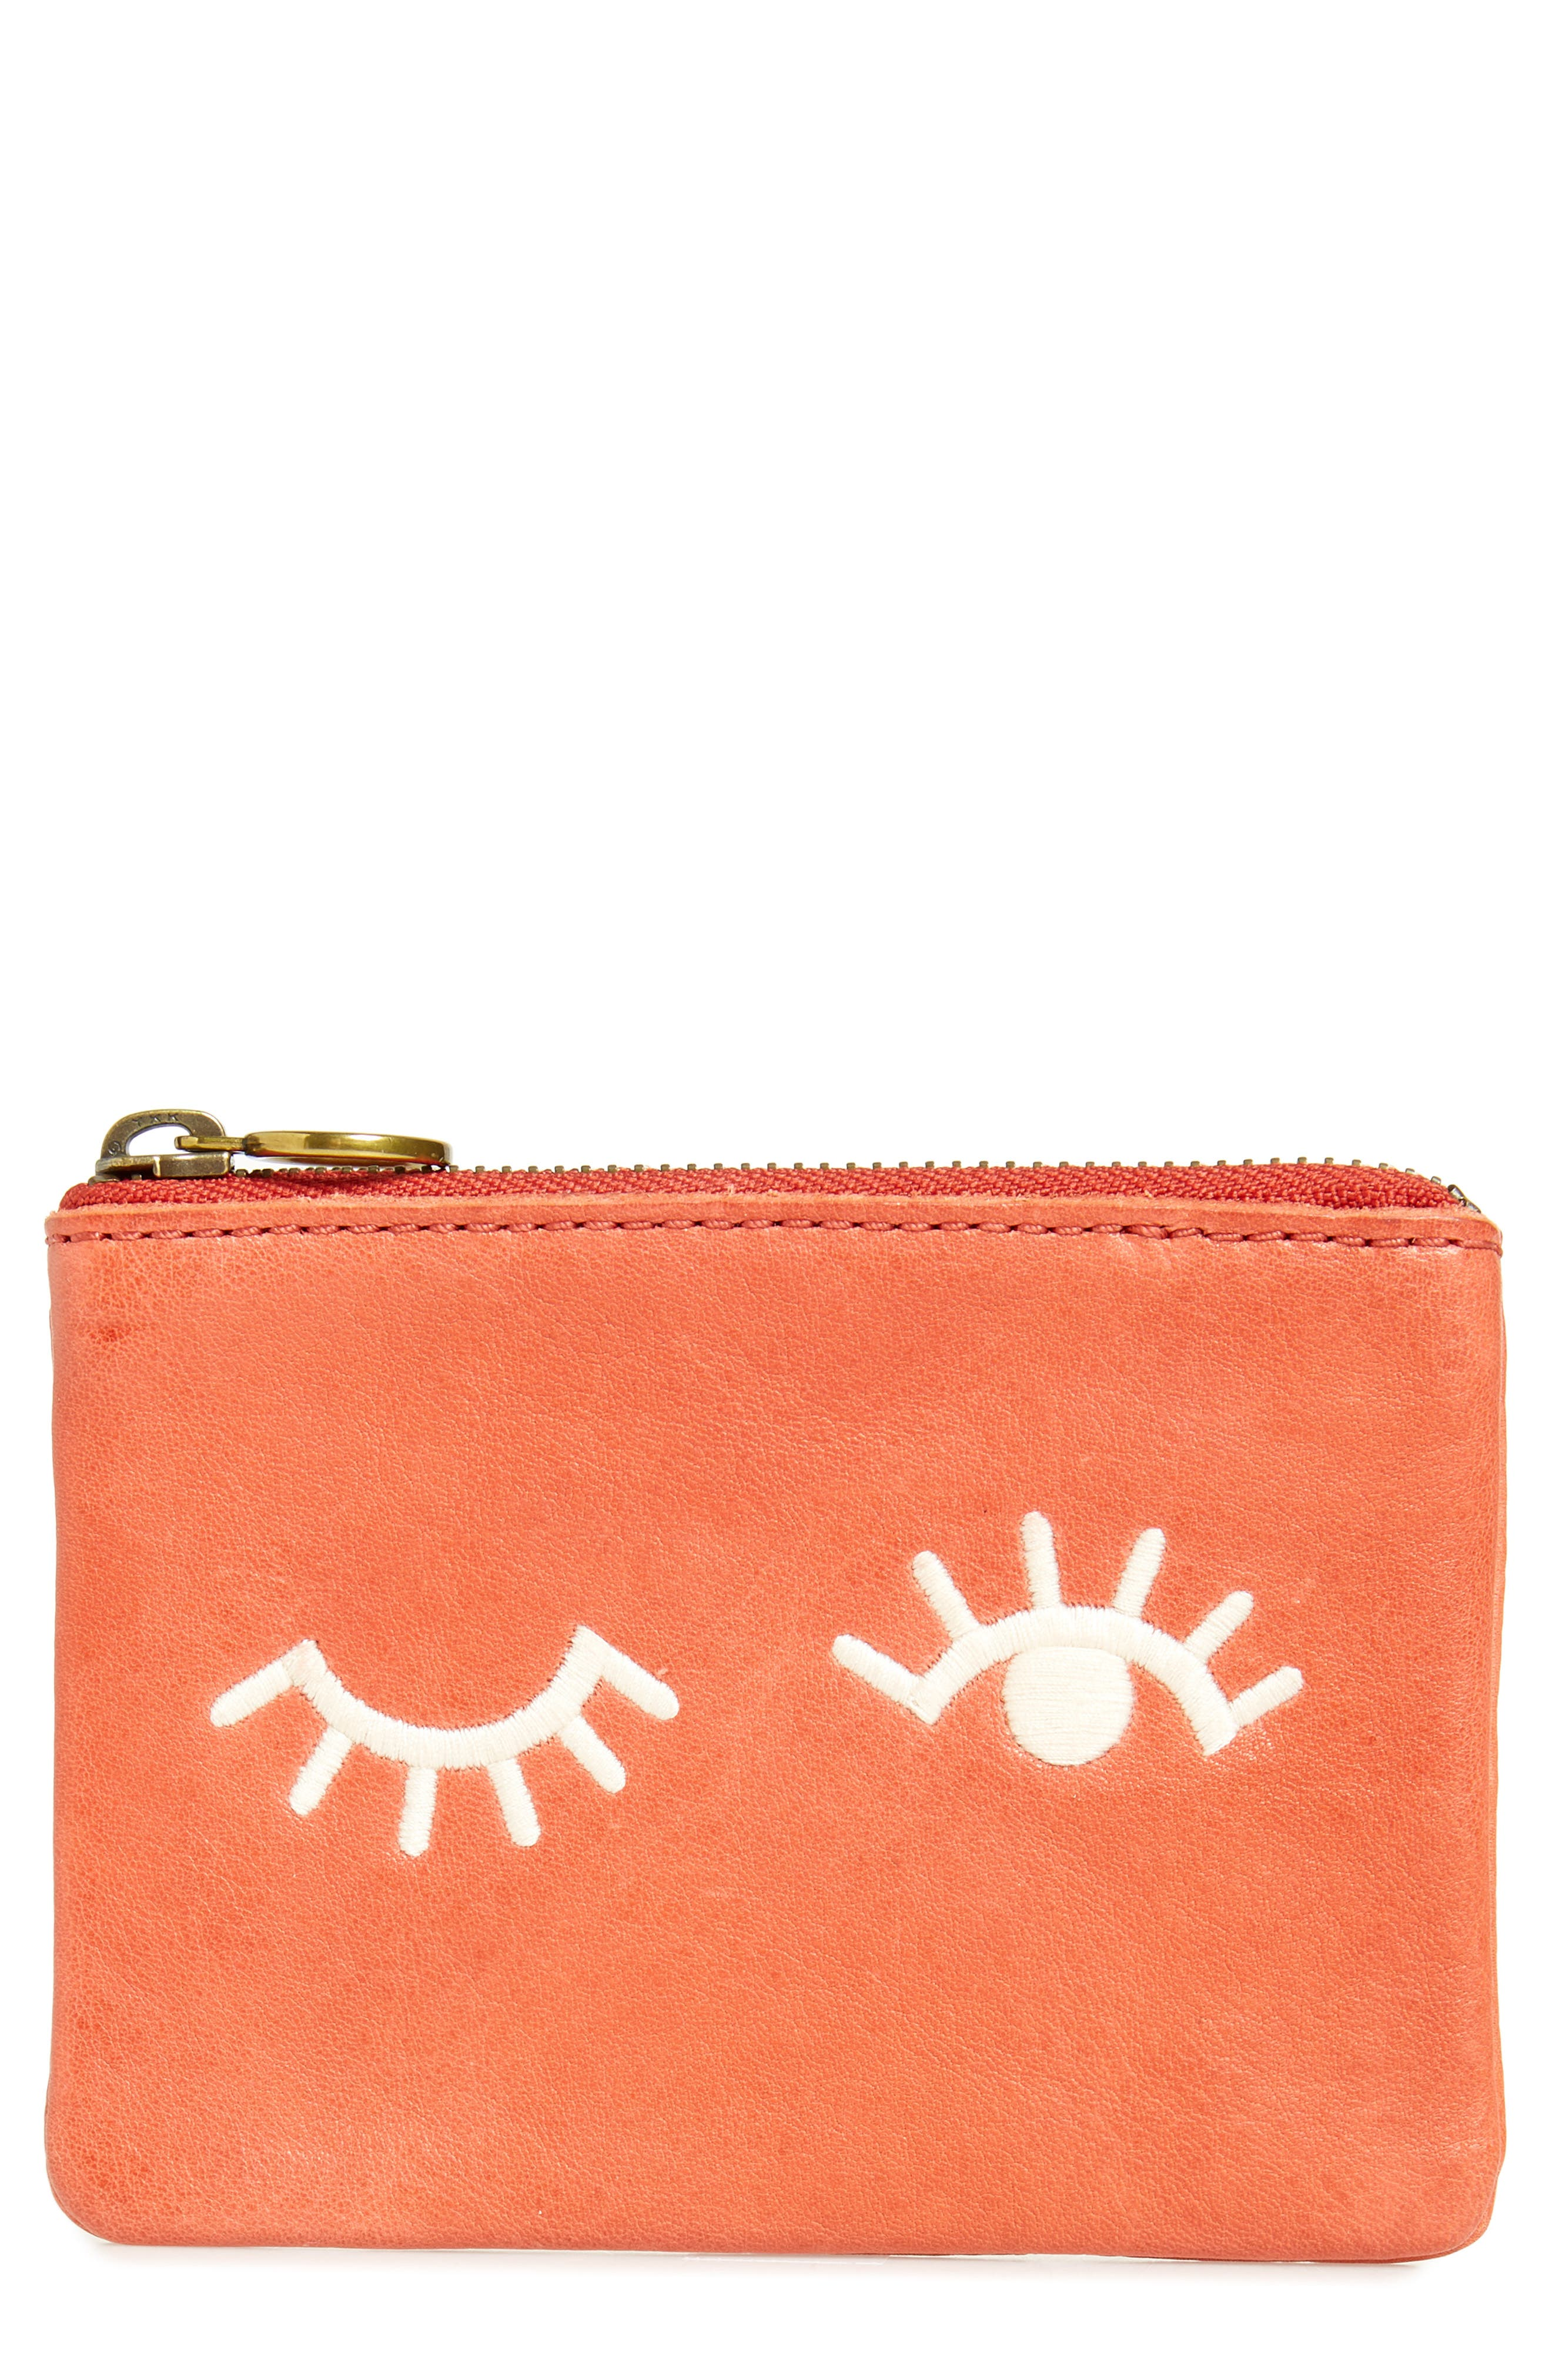 Madewell Eye Embroidered Leather Zip Pouch